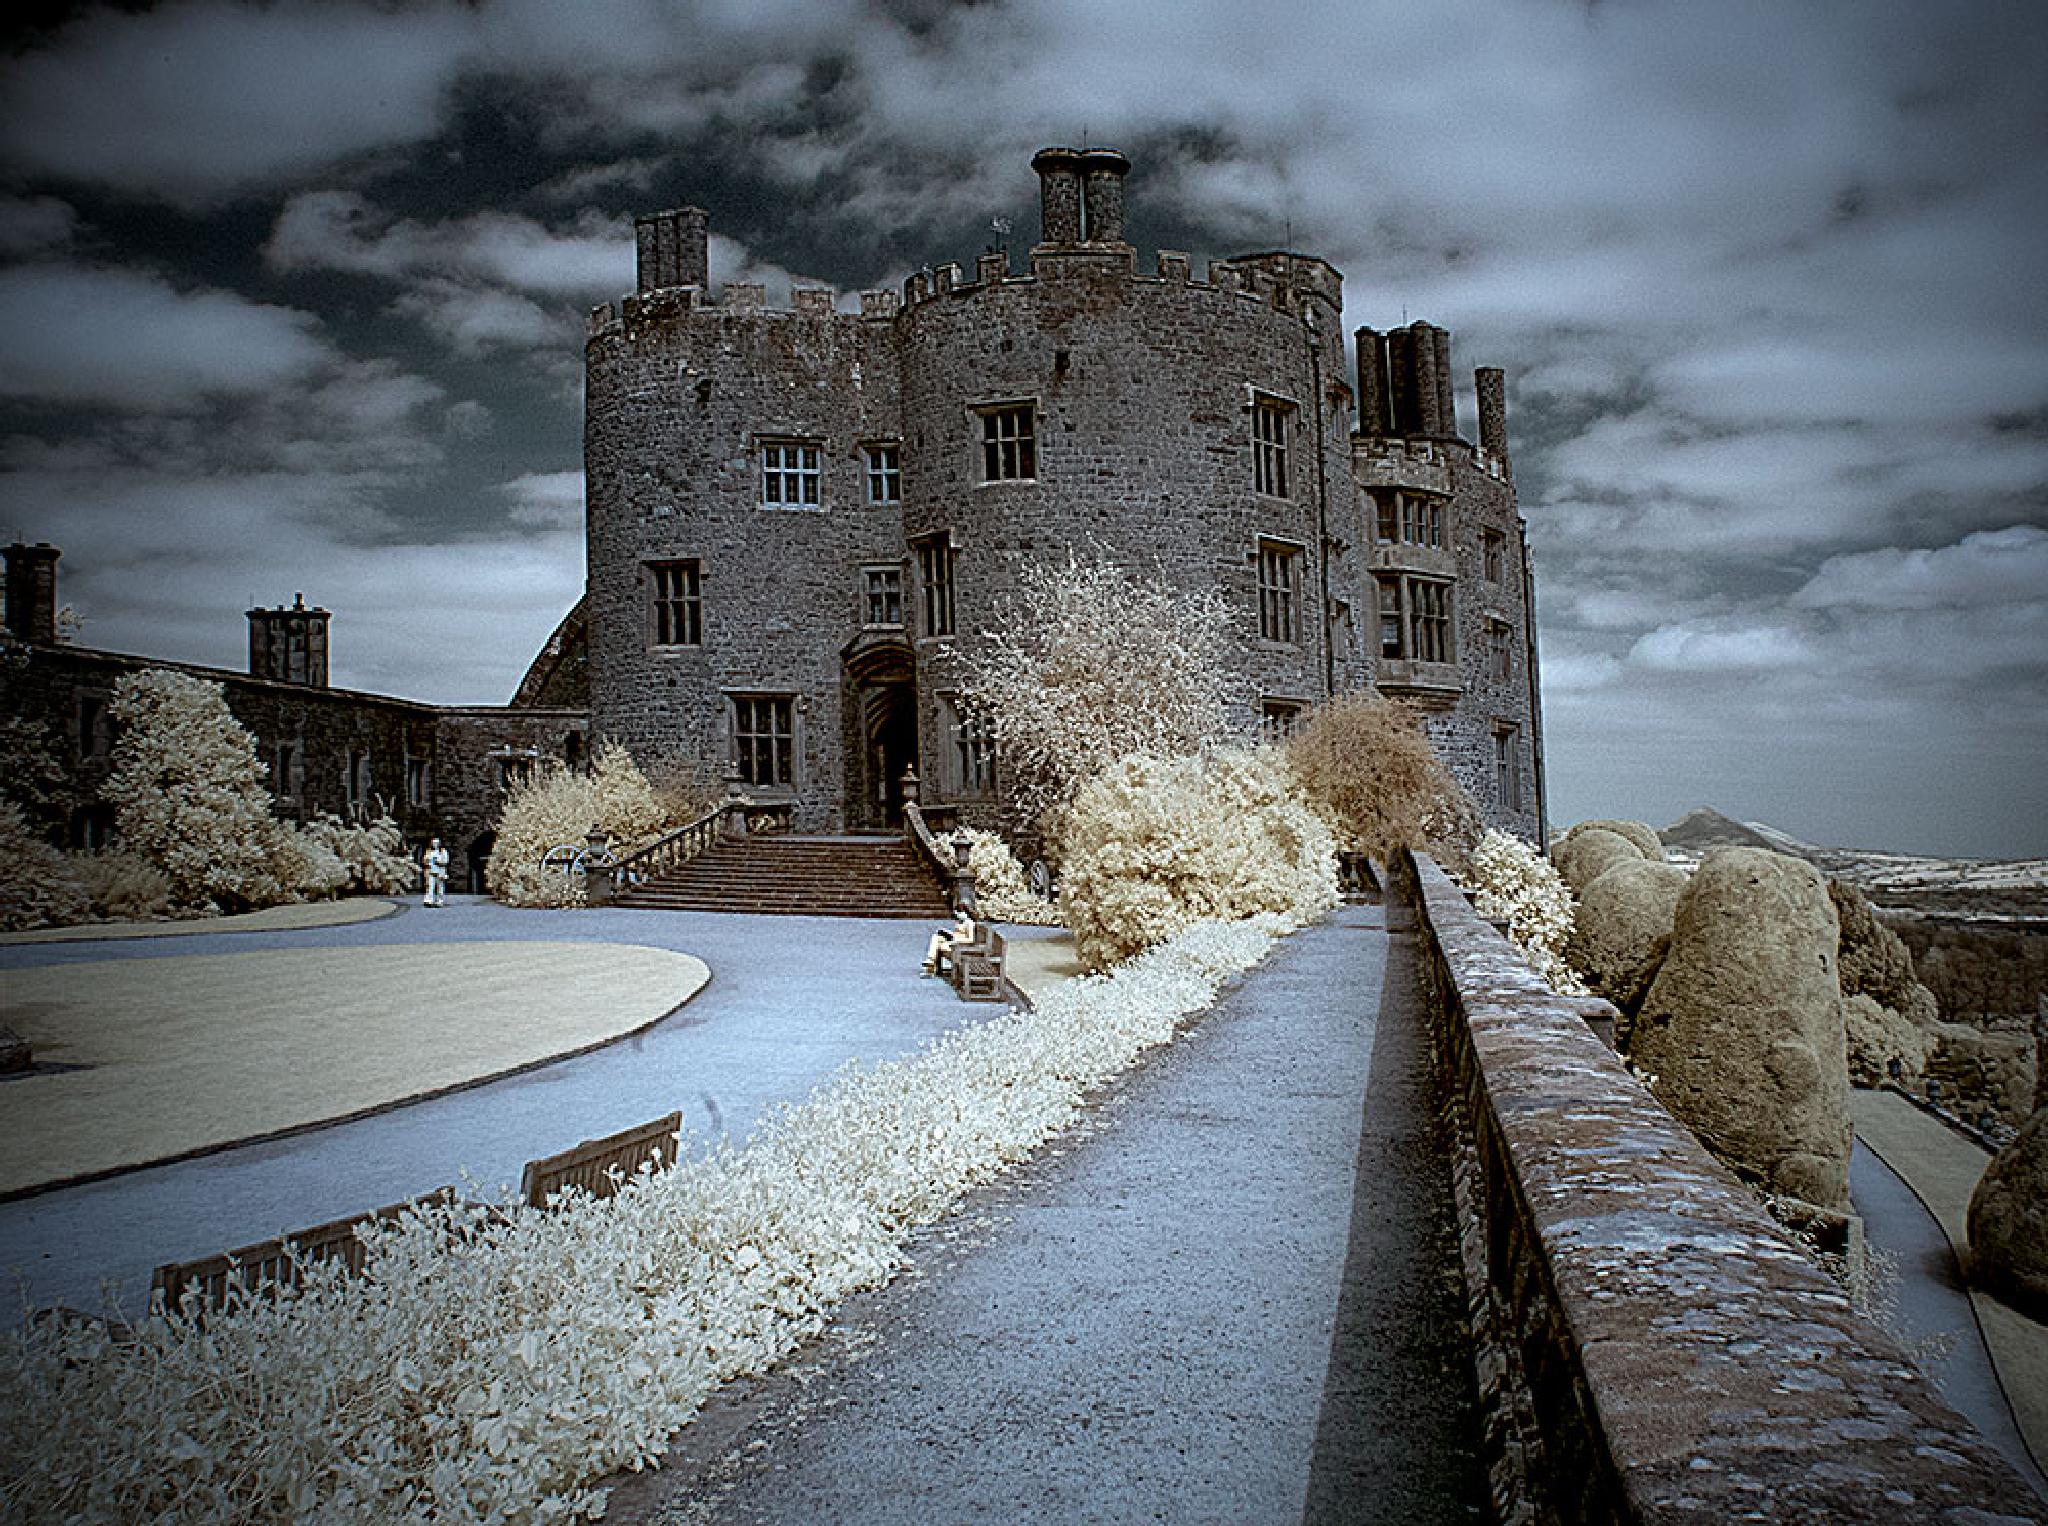 castle in Wales   by mikepl12